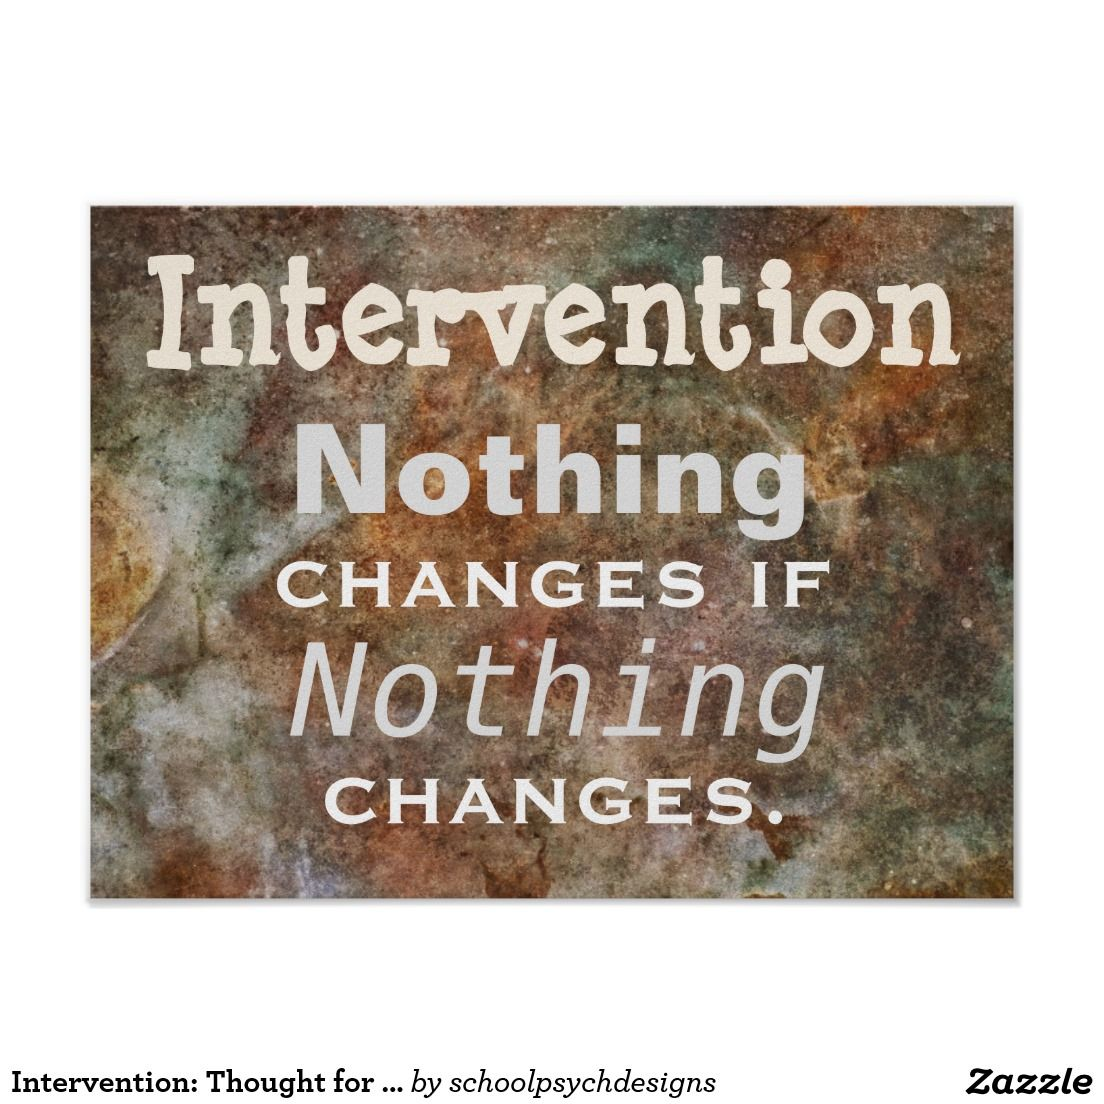 Intervention: Thought for the Day Poster (response to intervention) designed by schoolpsychdesigns of Zazzle.com